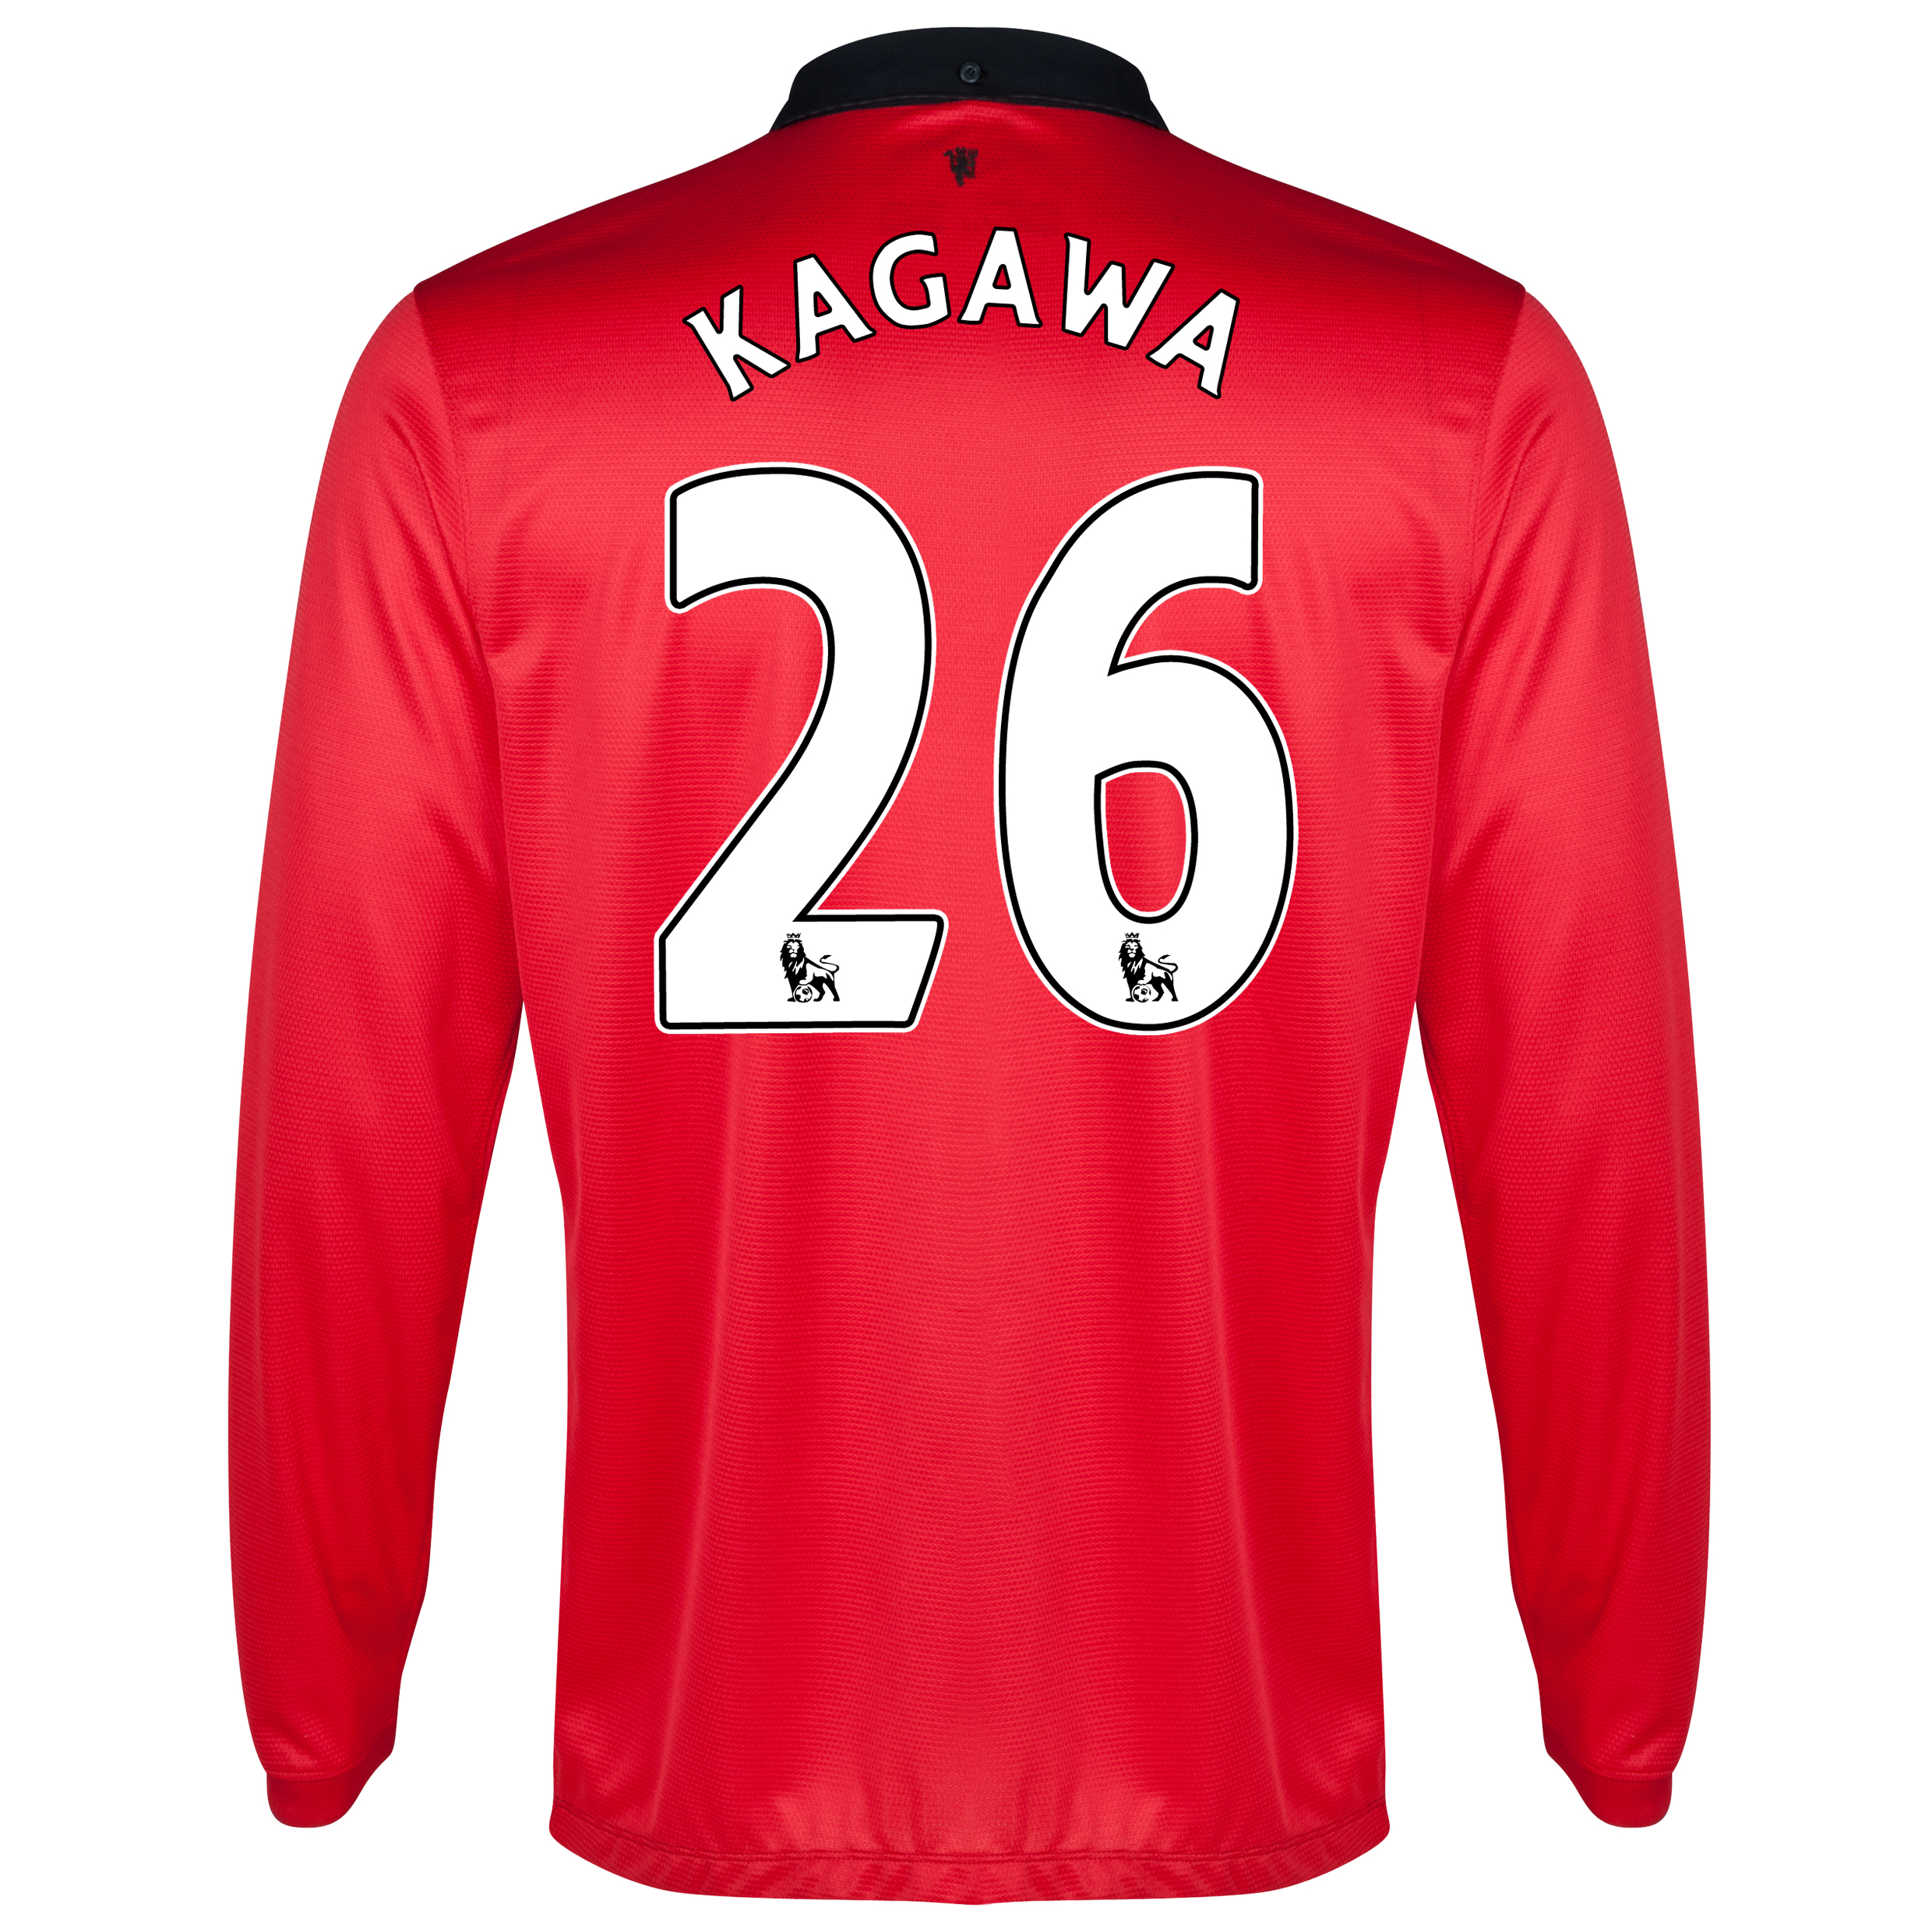 Manchester United Home Shirt 2013/14 - Long Sleeved with Kagawa 26 printing